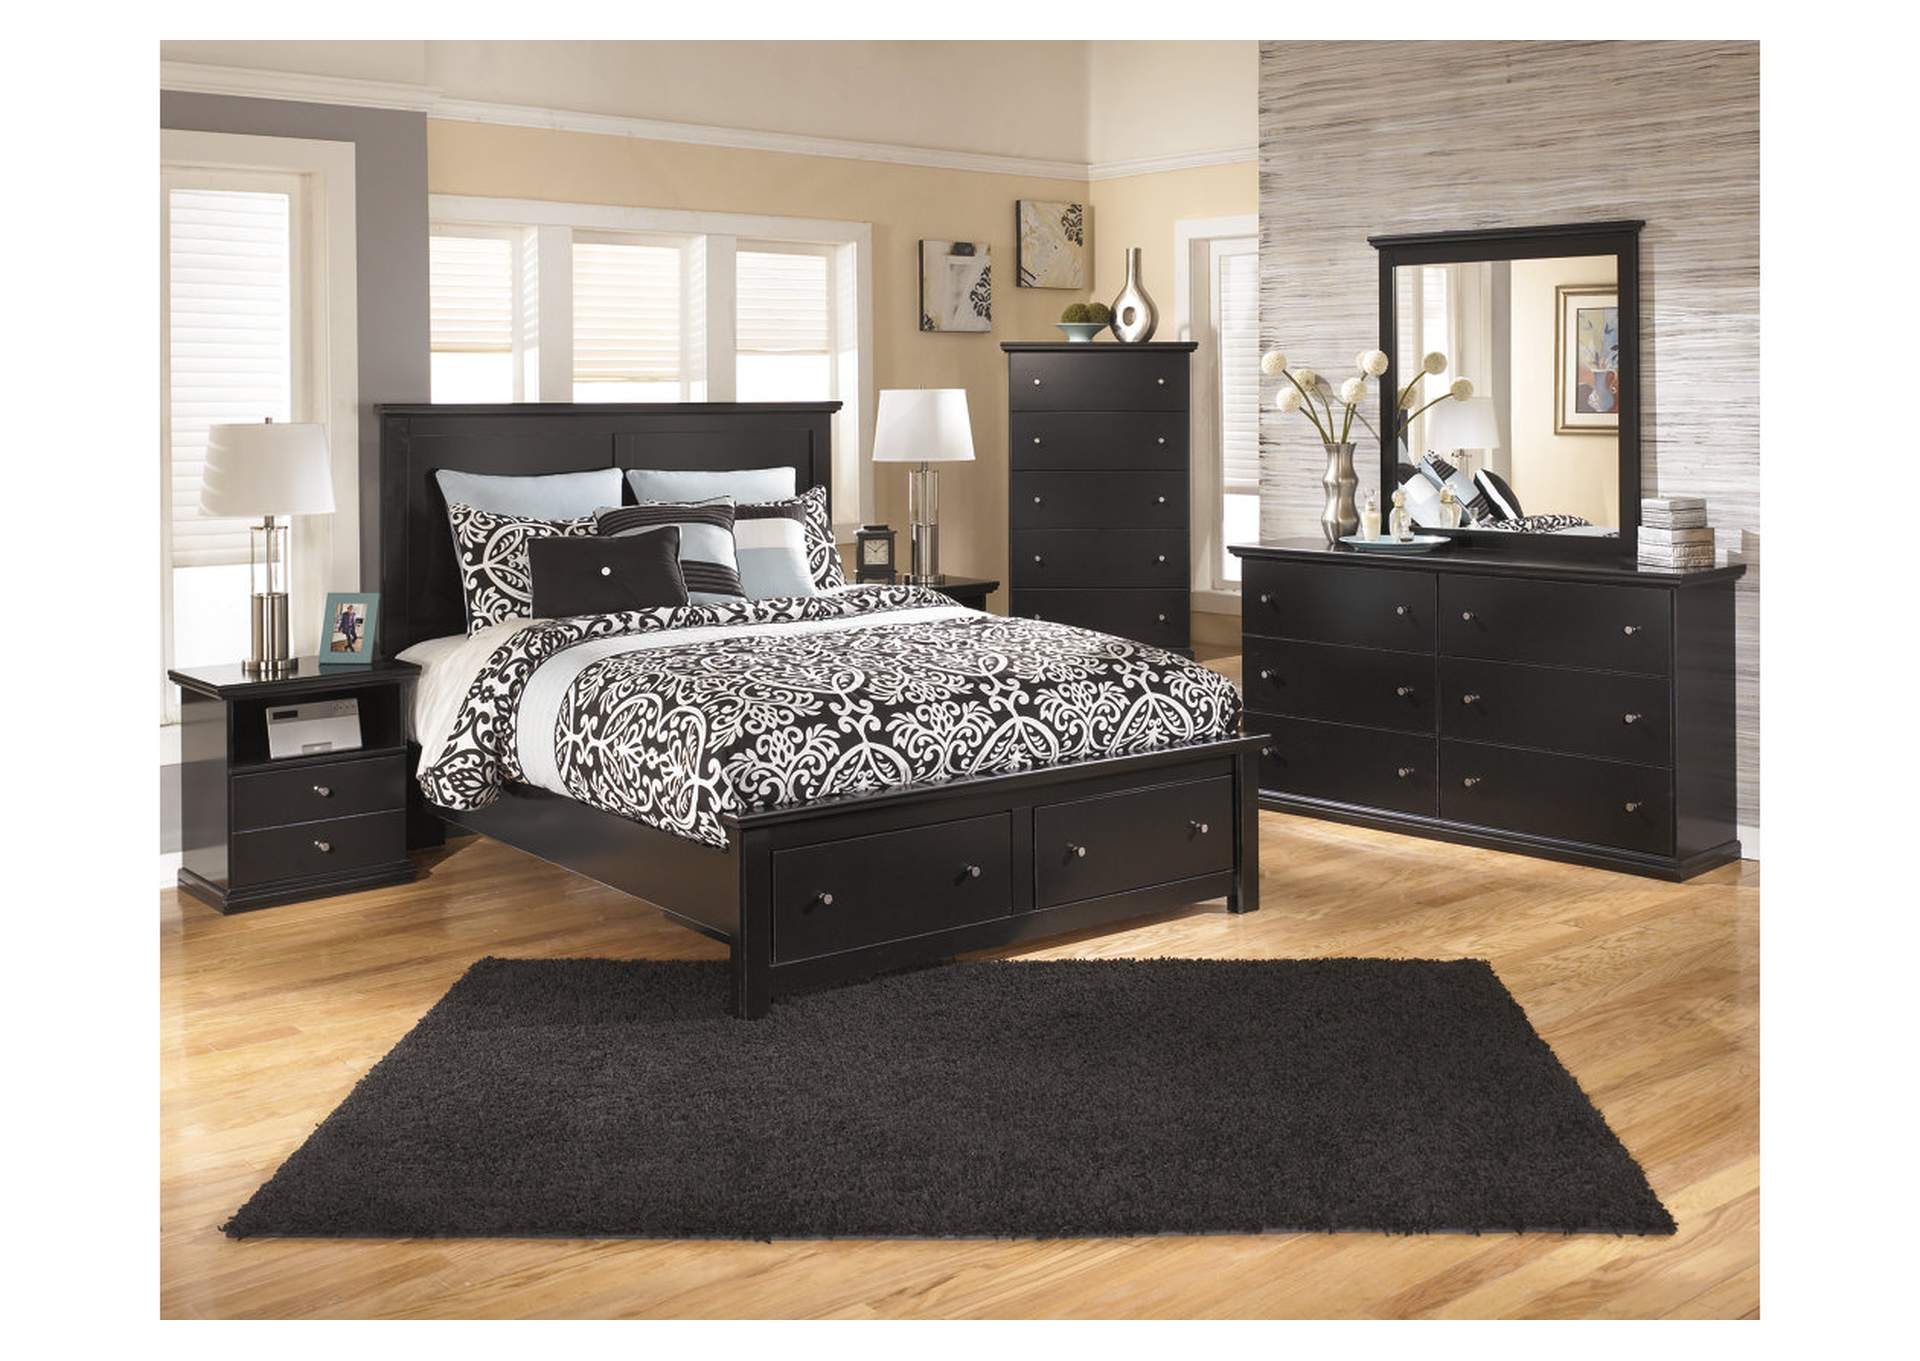 Maribel Queen Storage Platform Bed, Dresser & Mirror,Signature Design By Ashley